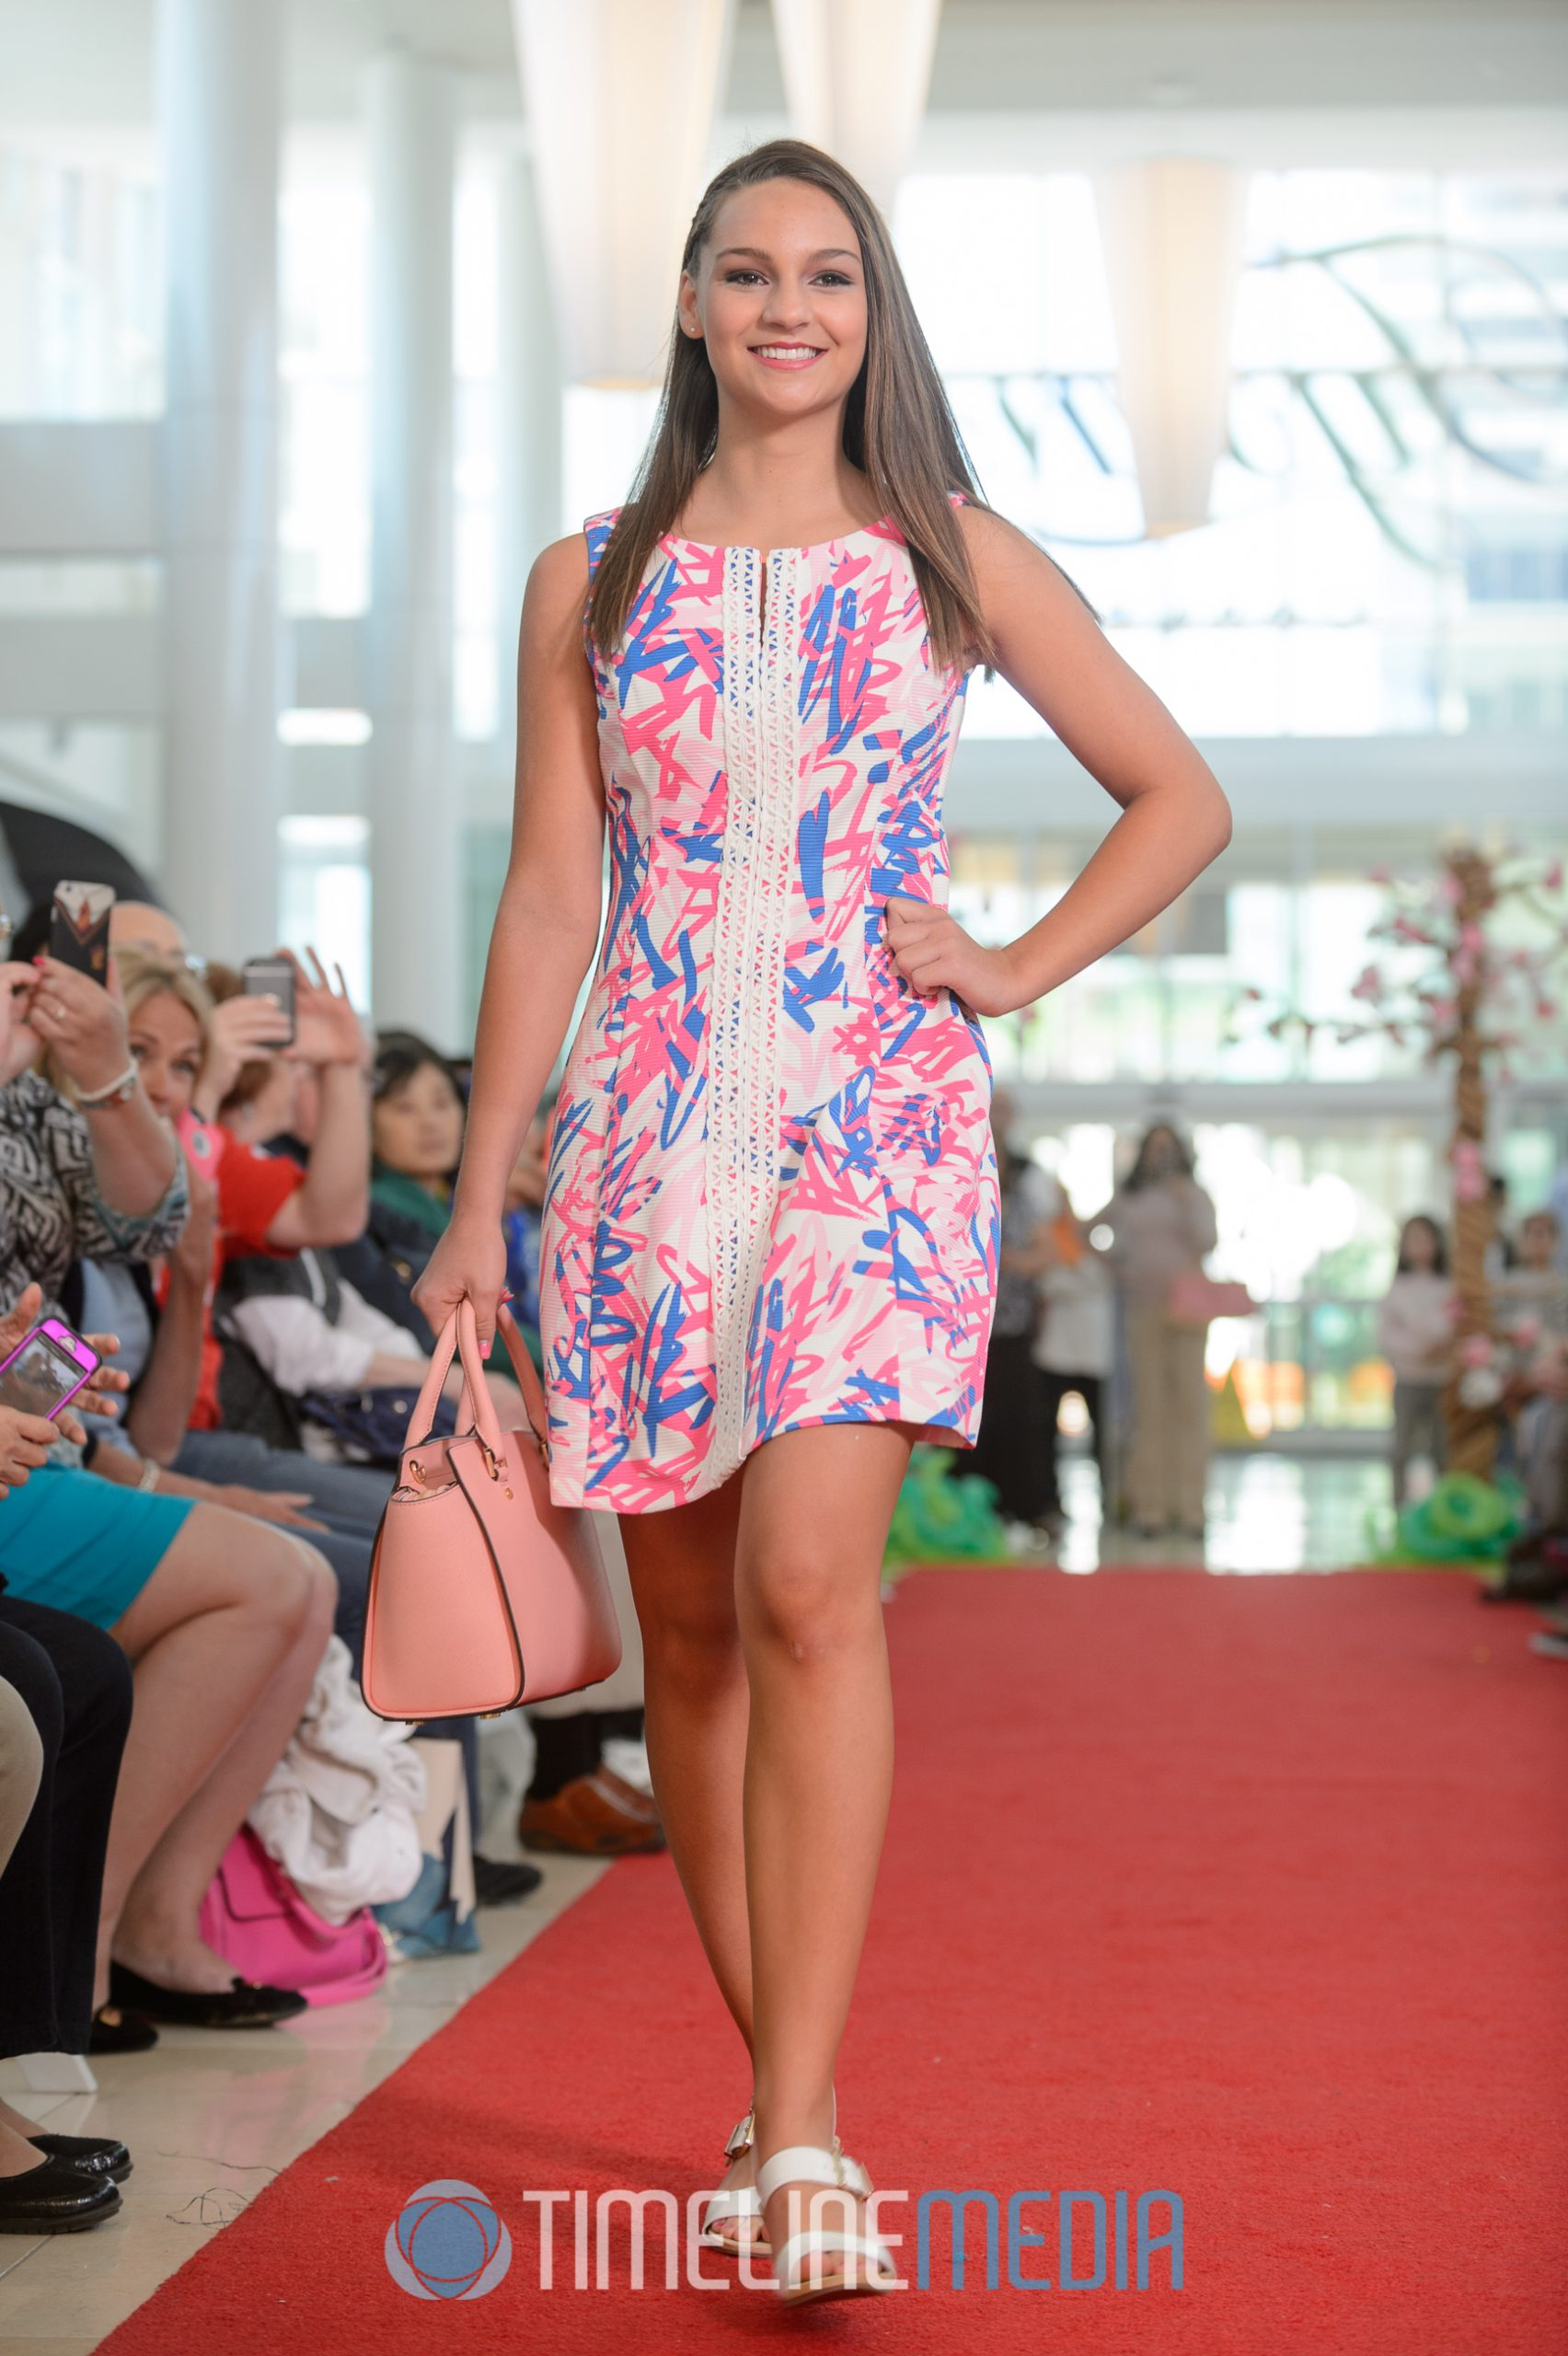 Lord and Taylor Spring Fashions ©TimeLine Media